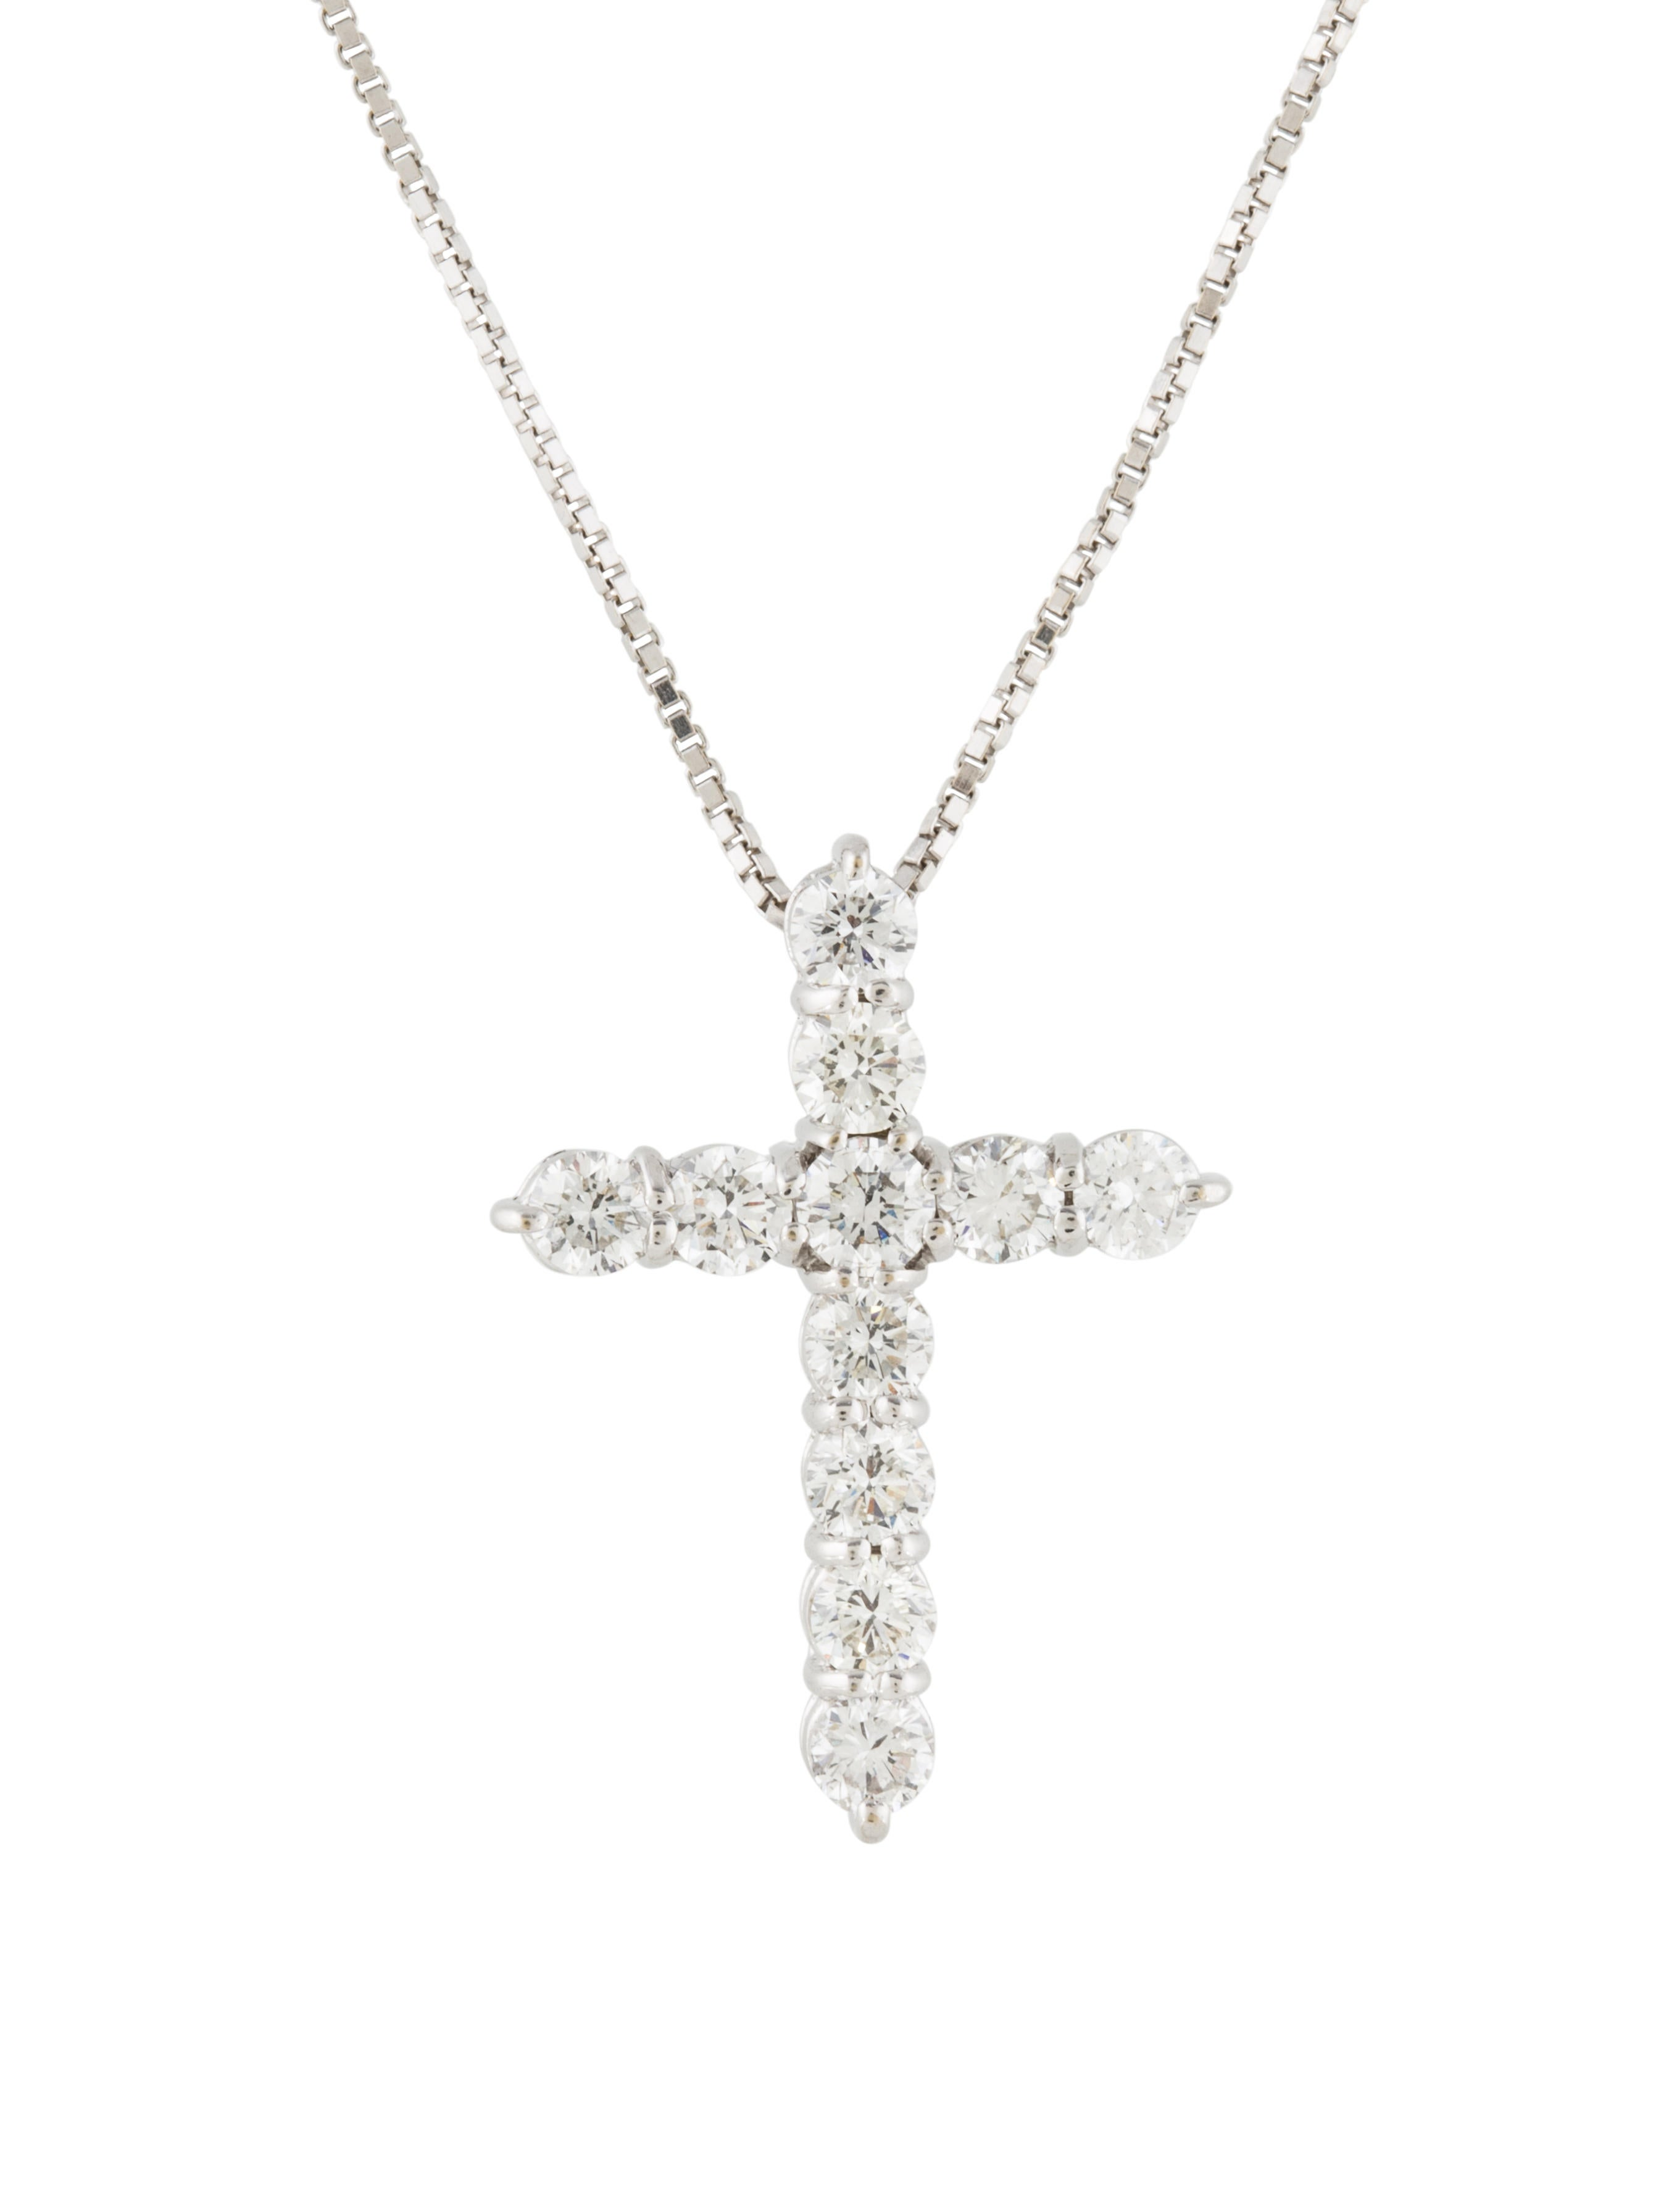 roberto coin 18k diamond cross pendant necklace. Black Bedroom Furniture Sets. Home Design Ideas